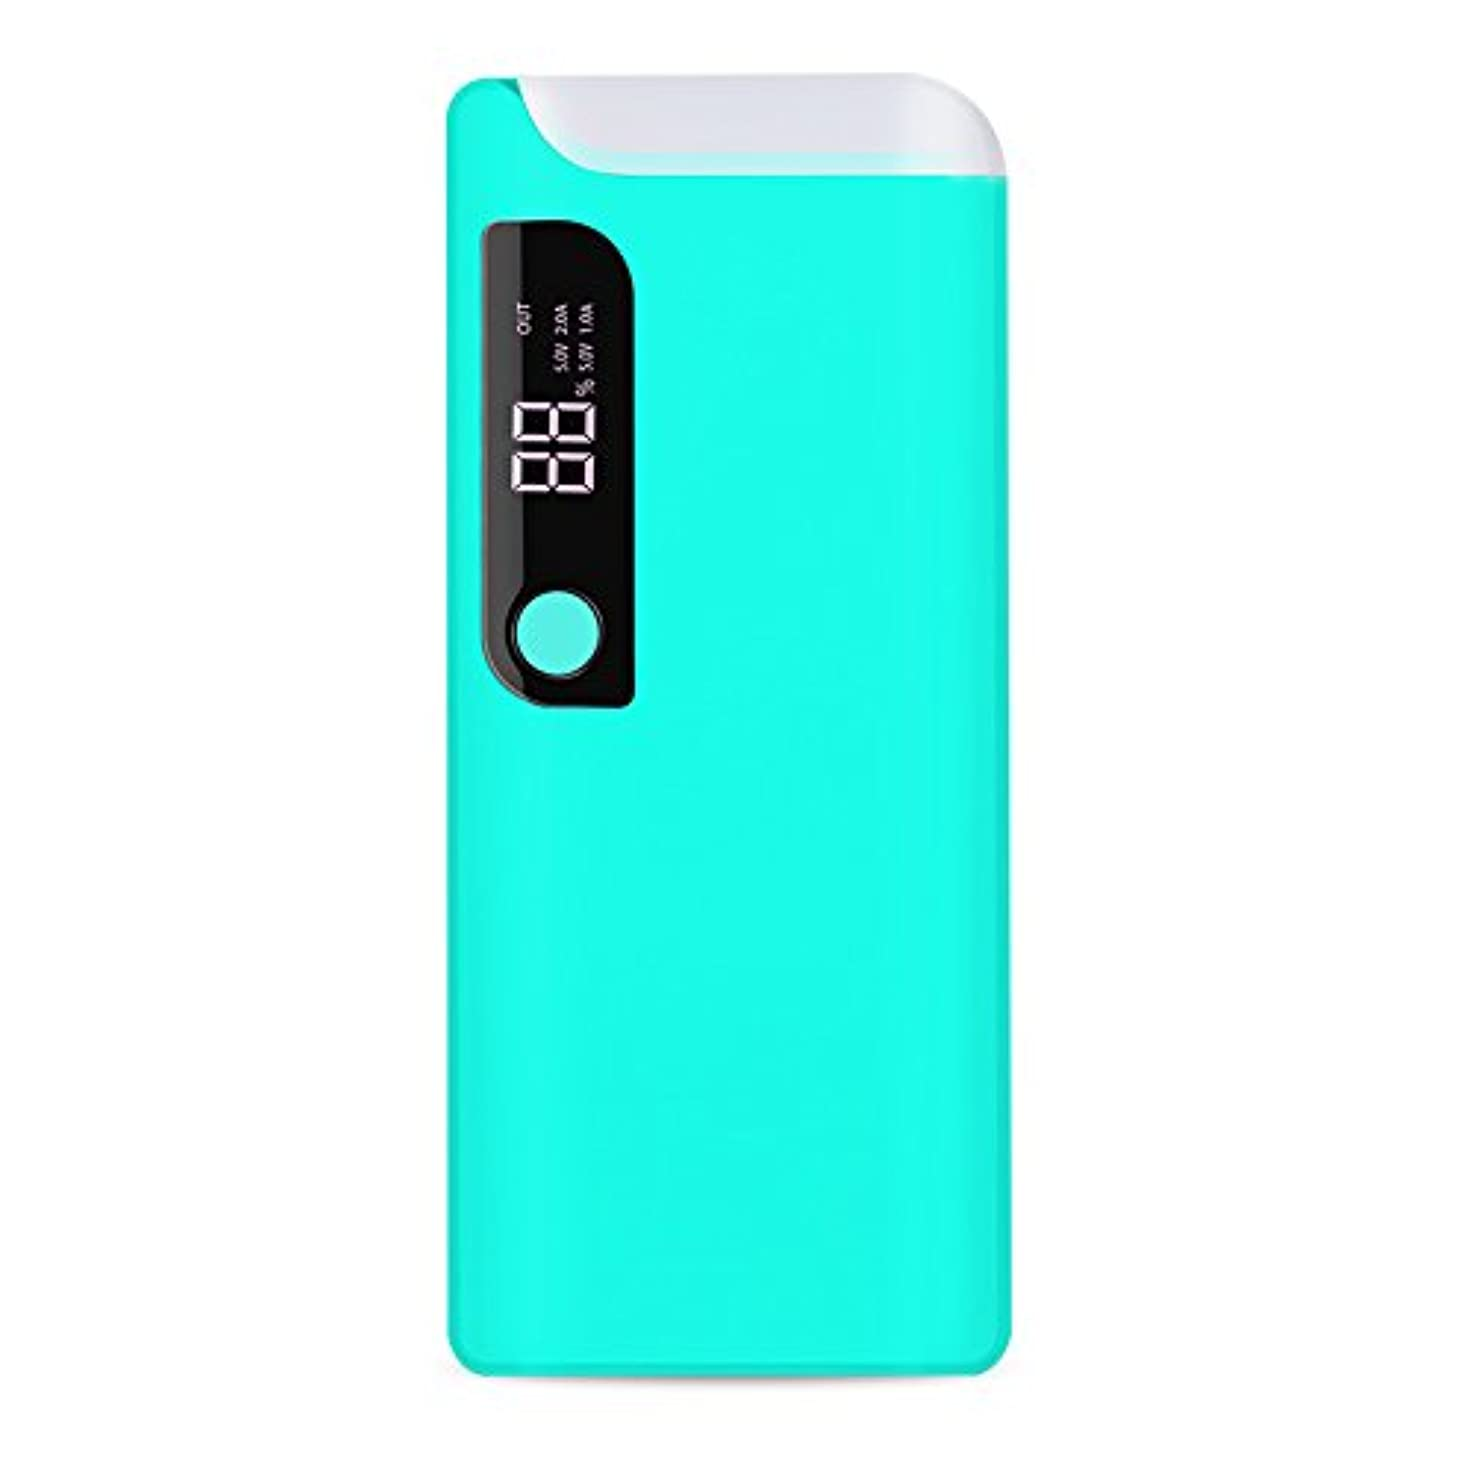 15000Mah Portable Charger, BBtech Power Bank with LED Rotating Table Lamp Universal Battery Charger External Battery Pack, External Power Source (Teal)